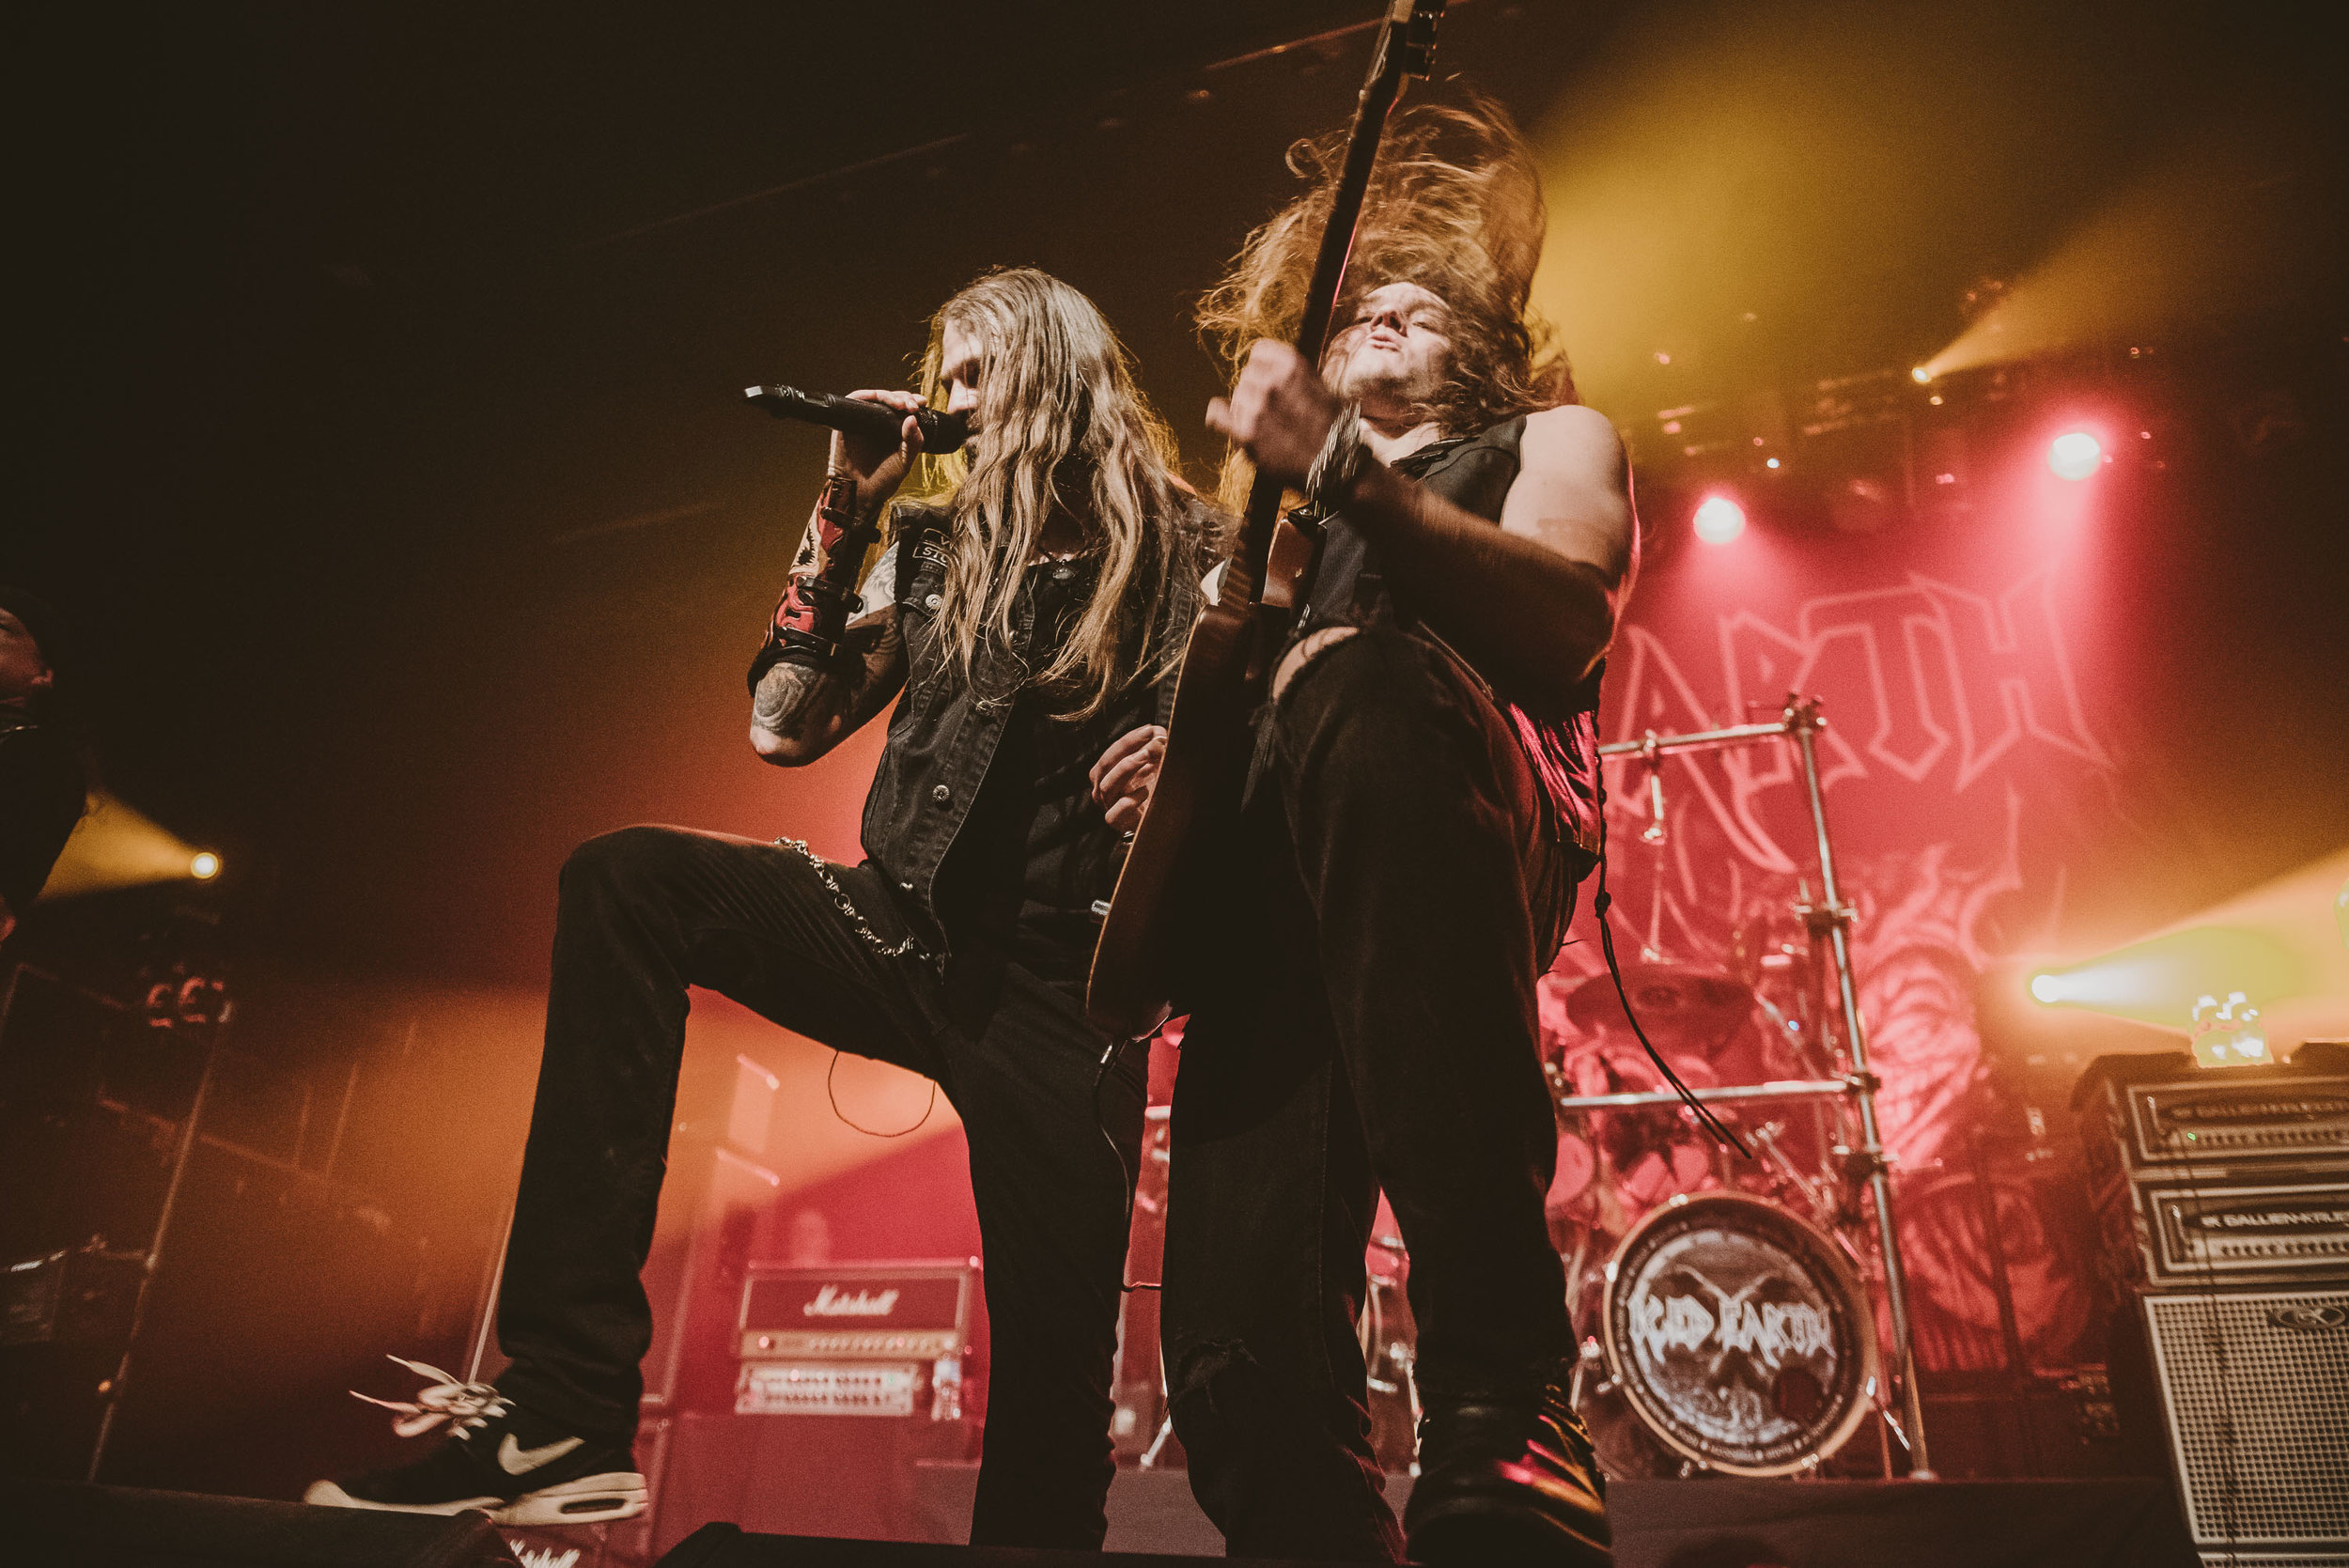 1_Iced_Earth-Rickshaw_Theatre-Timothy_Nguyen-20180304 (9 of 20).jpg